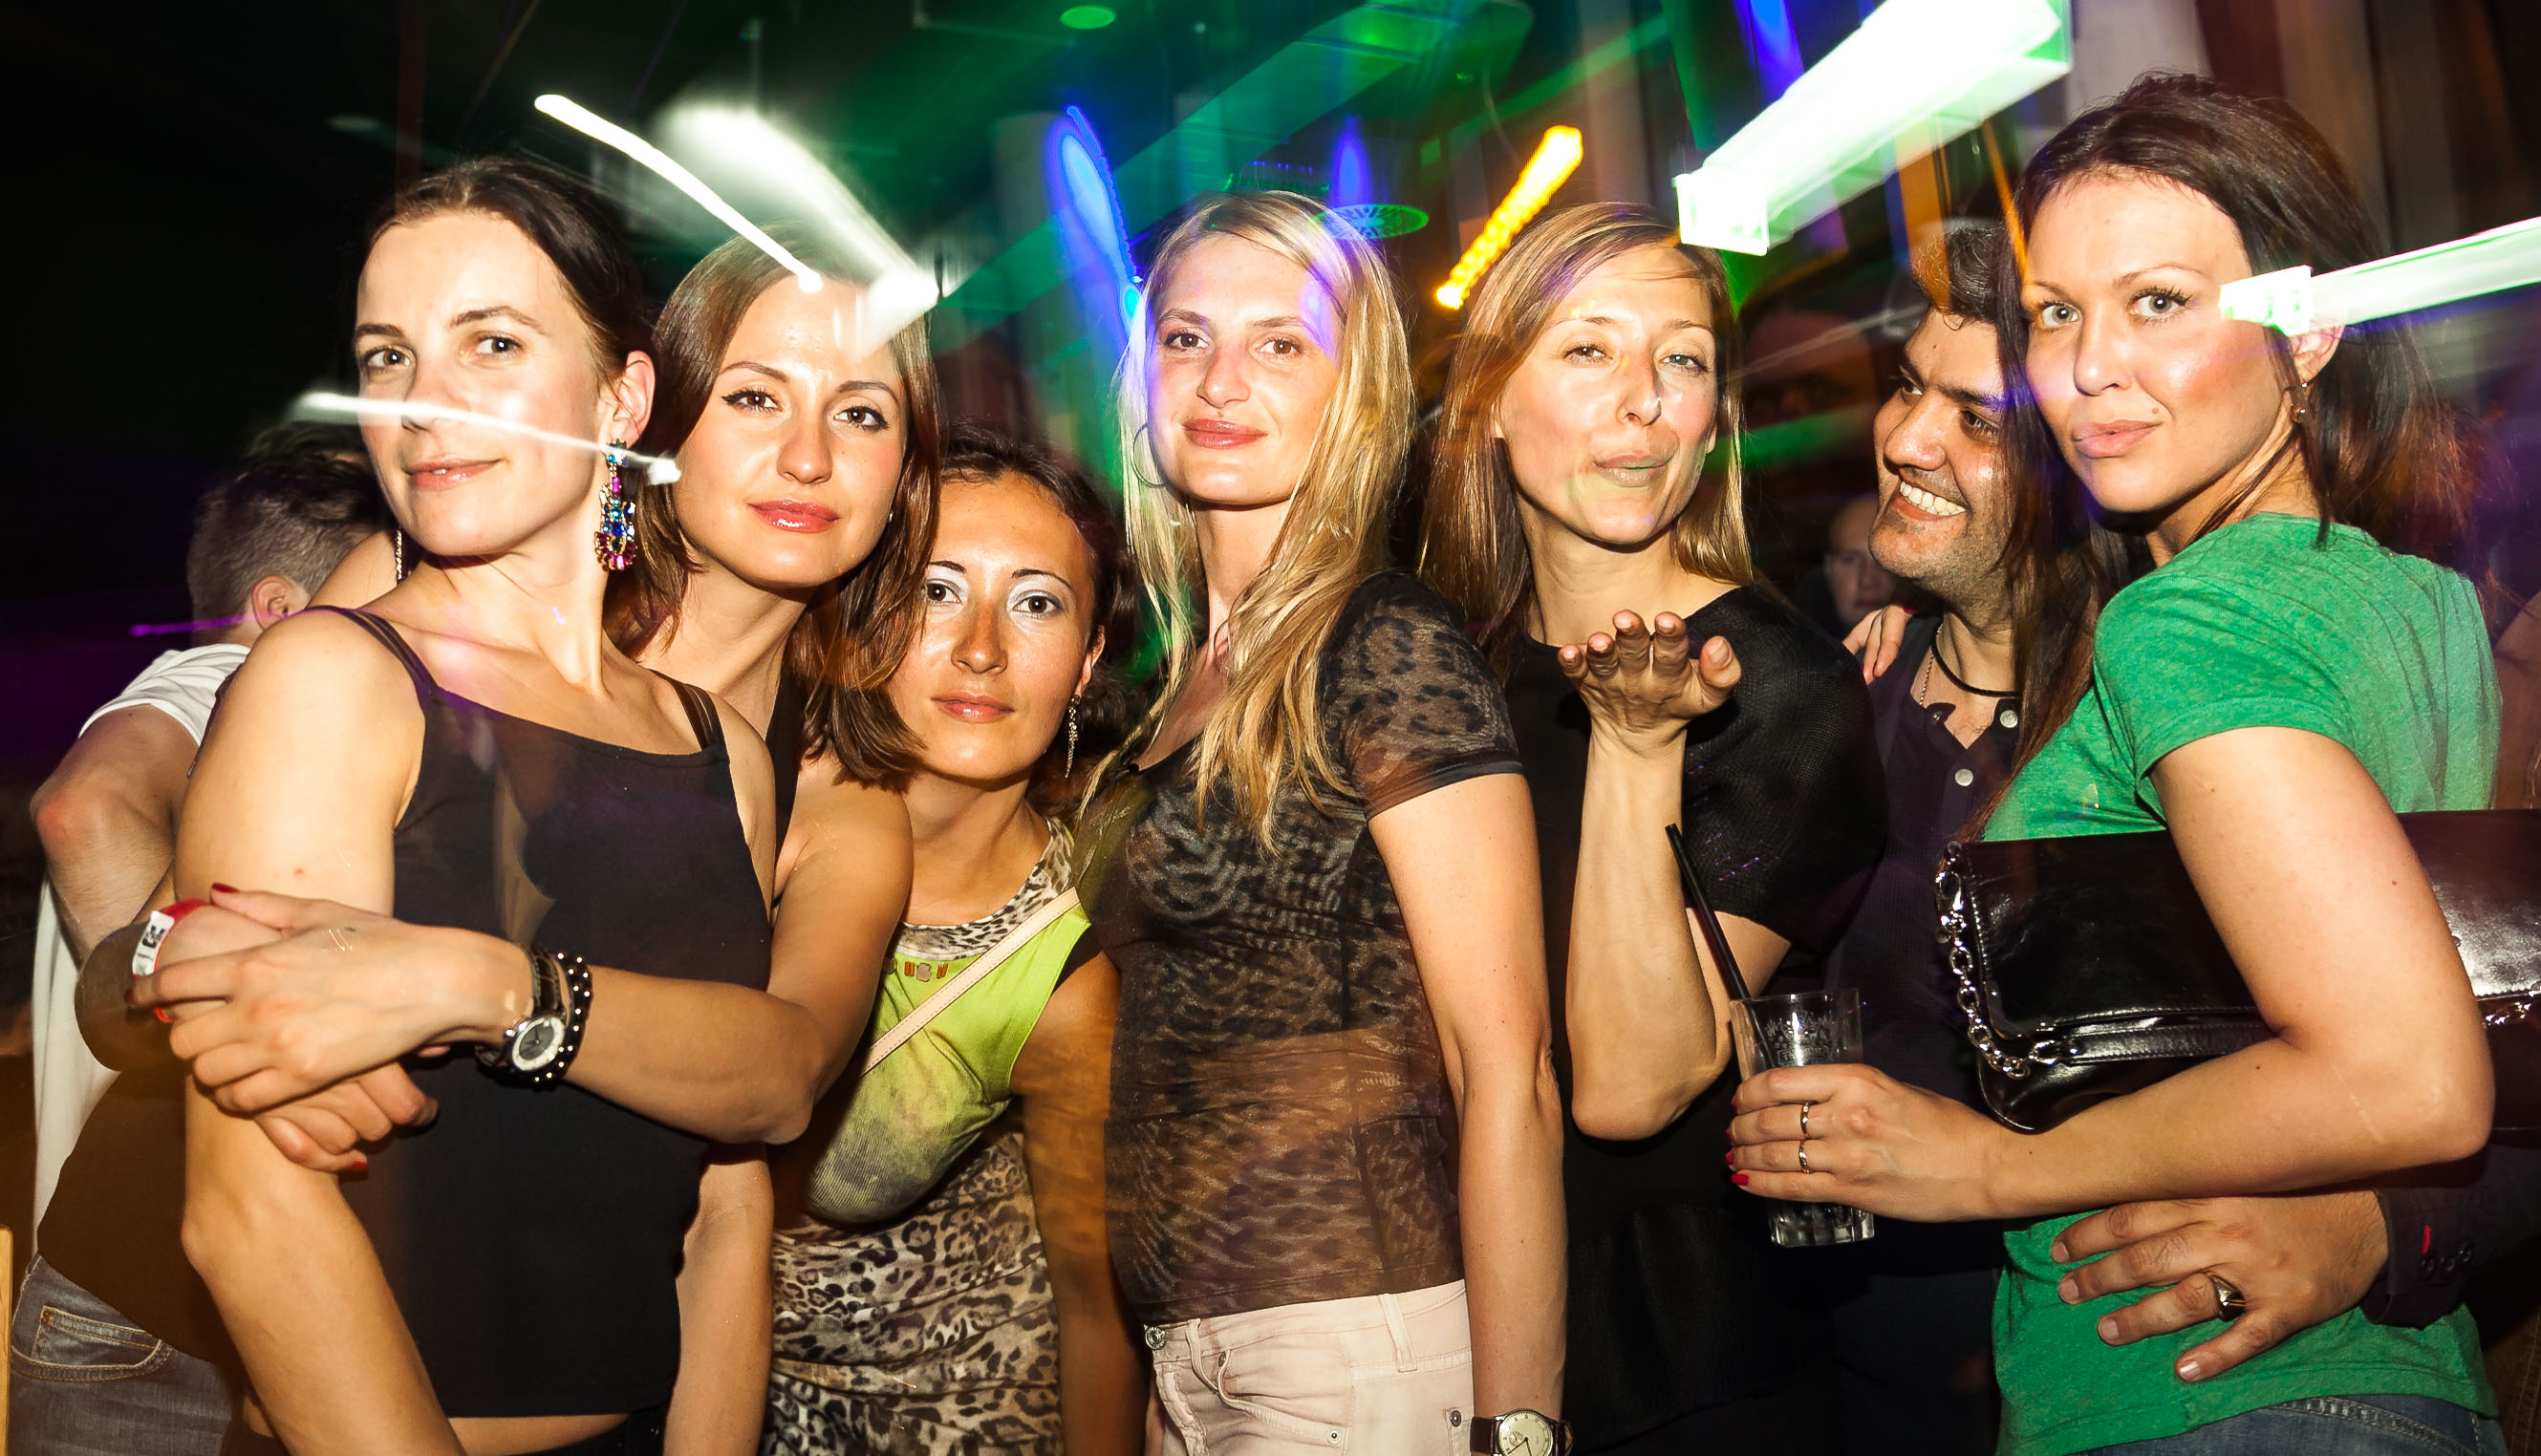 People-Fotografie-Frauen-Party